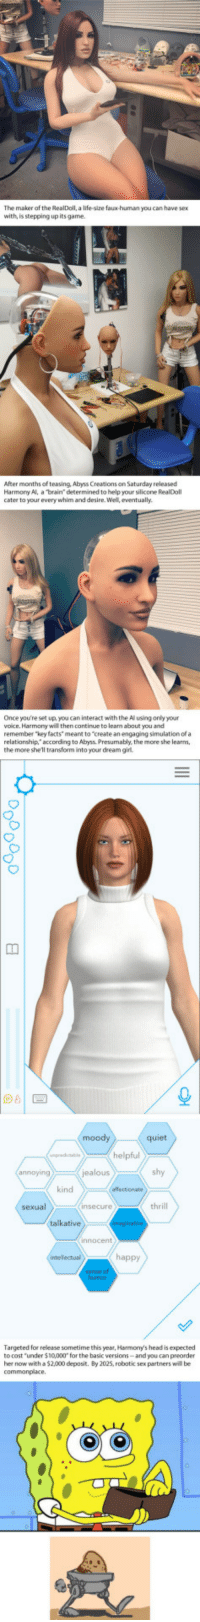 """Club, Facts, and Head: The maker of the RealDoll, a life-size faux-human you can have sex  with, is stepping up its game.  After months of teasing, Abyss Creations on Saturday released  Harmony Al, a brain determined to help your silicone RealDoll  cater to your every whim and desire. Well eventually.  Once you're set up, you can interact with the Al using only your  voice. Harmony will then continue to learn about you and  remember """"key facts"""" meant to """"create an engaging simulation of a  relationship,""""according to Abyss. Presumably, the more she learns,  the more shell transform into your dream girl  quiet  helpful  shy  kind  thrill  Targeted for release sometime this year, Harmorny's head is expected  to cost """"under $10,000* for the basic versions-and you can preorder  her now with a$2,000 deposit. By 2025, robotic sex partners will be <p><a href=""""http://laughoutloud-club.tumblr.com/post/160056061549/your-westworld-sexbot-is-almost-here-thanks-to"""" class=""""tumblr_blog"""">laughoutloud-club</a>:</p>  <blockquote><p>Your 'Westworld' sexbot is almost here, thanks to RealDoll</p></blockquote>"""